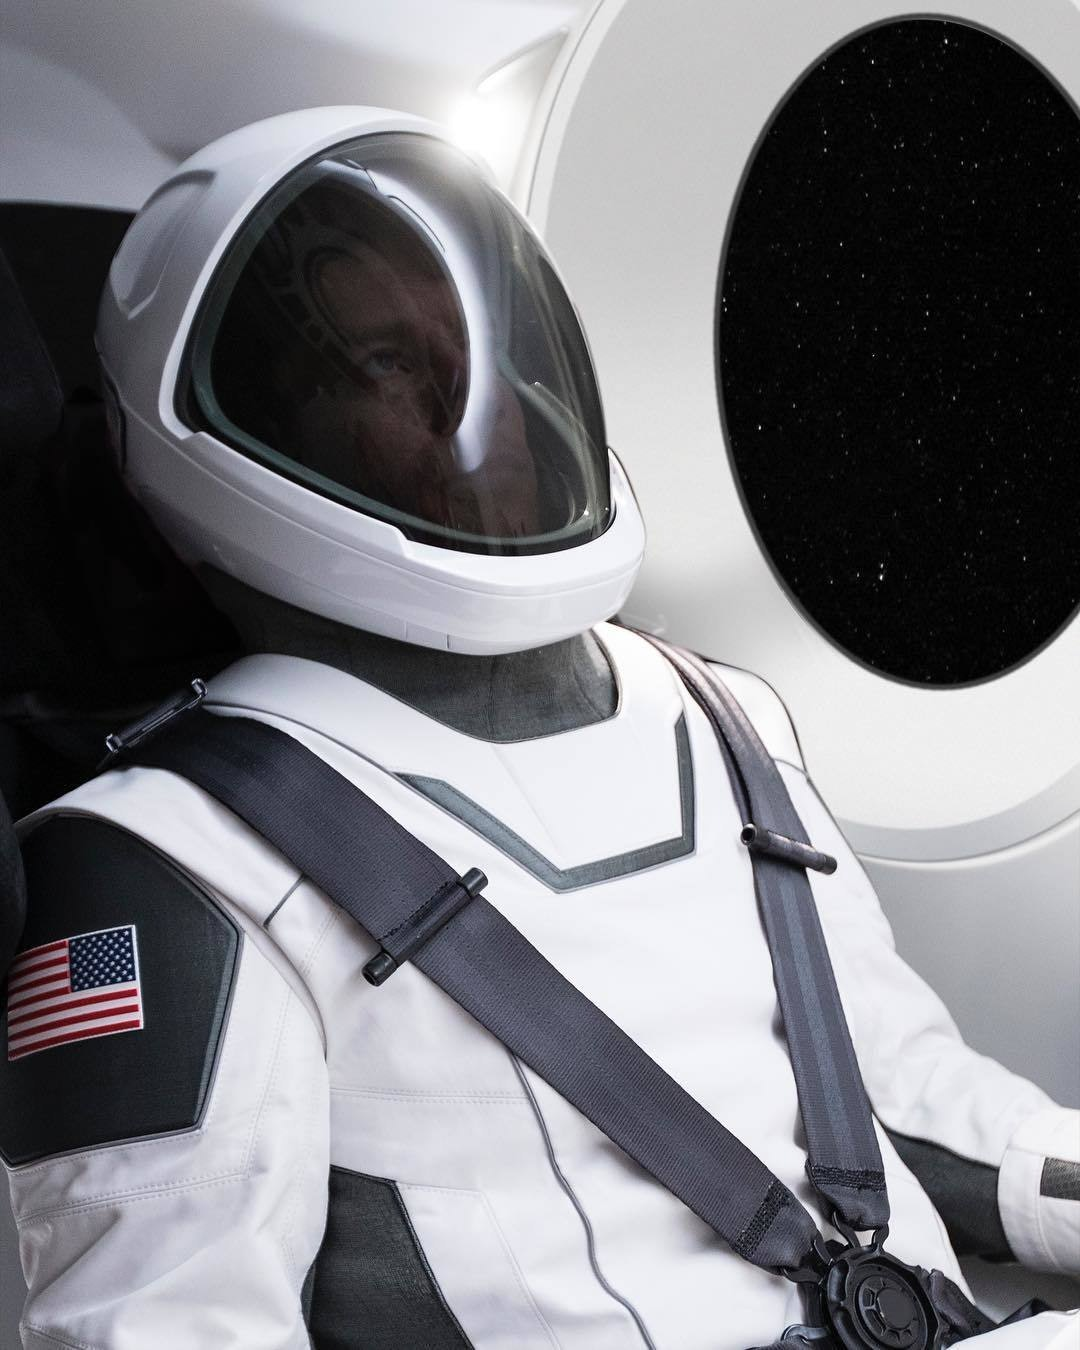 SpaceX's suit in action.